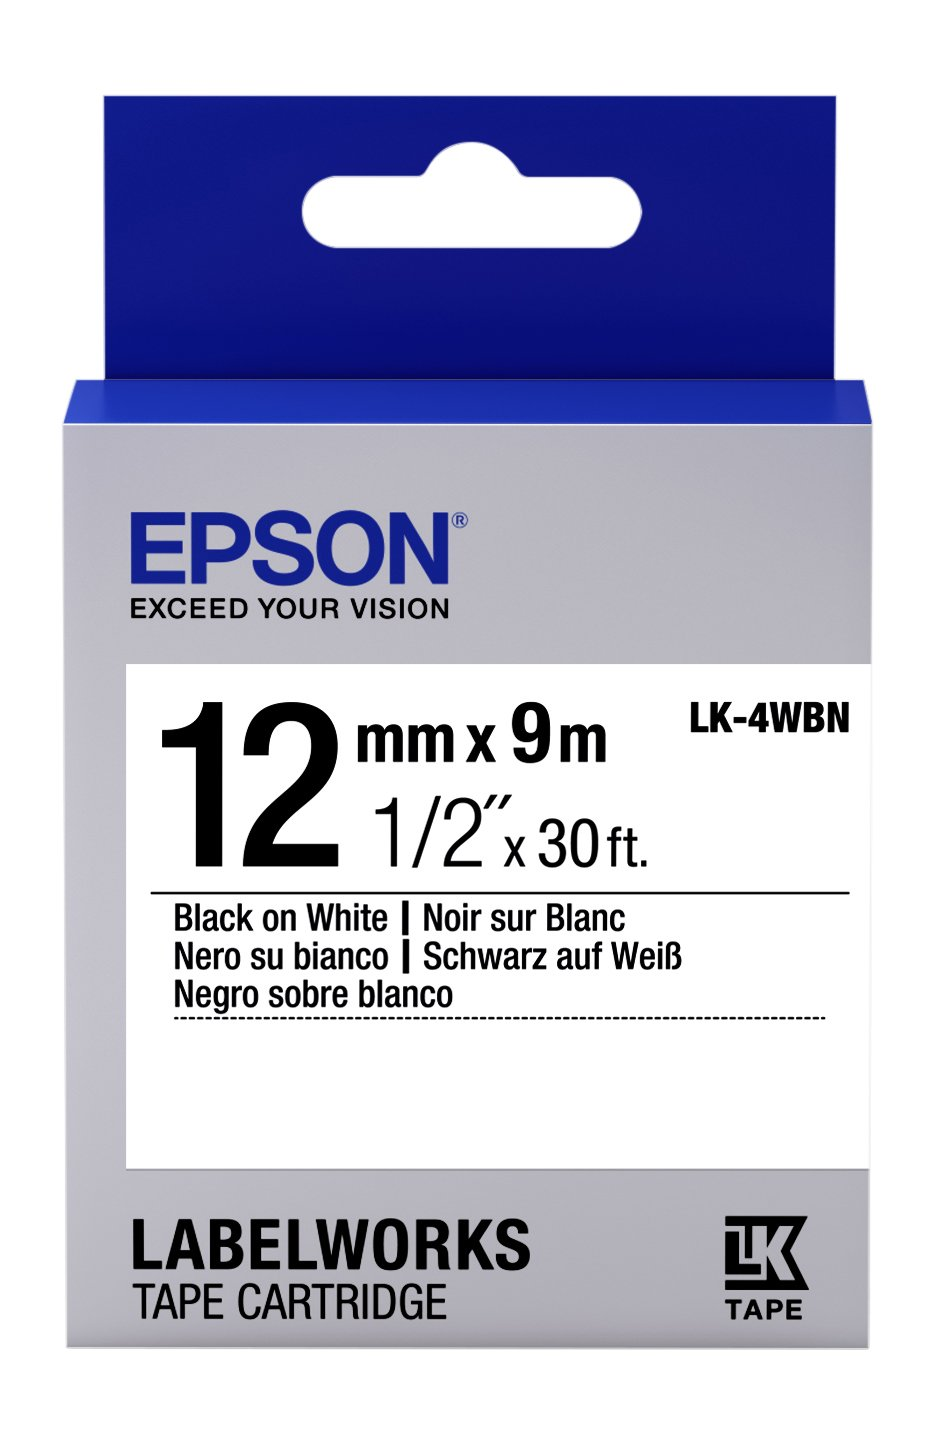 Epson LabelWorks Standard LK (Replaces LC) Tape Cartridge ~1/2'' Black on White (LK-4WBN) - For use with LabelWorks LW-300, LW-400, LW-600P and LW-700 label printers